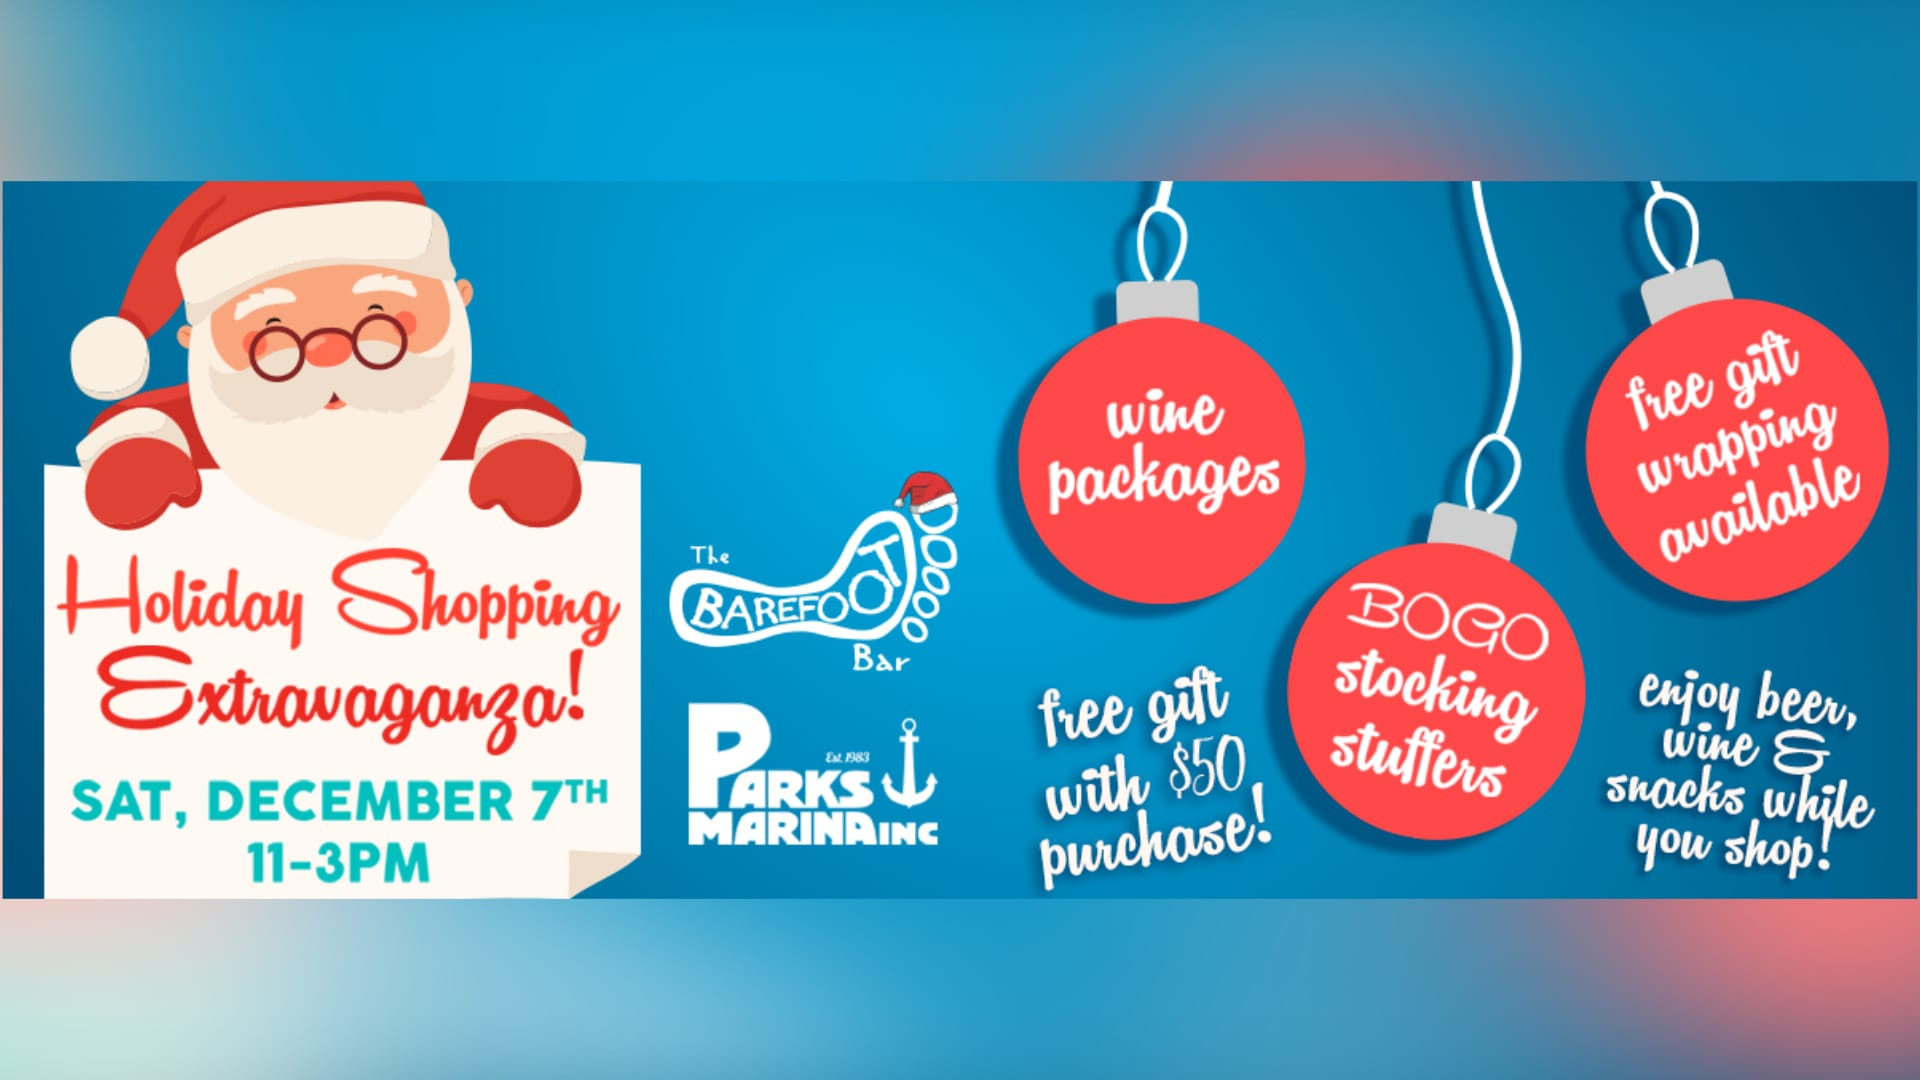 Parks Marina and the Barefoot Bar Holiday Shopping Extravaganza - Sat. Dec. 7